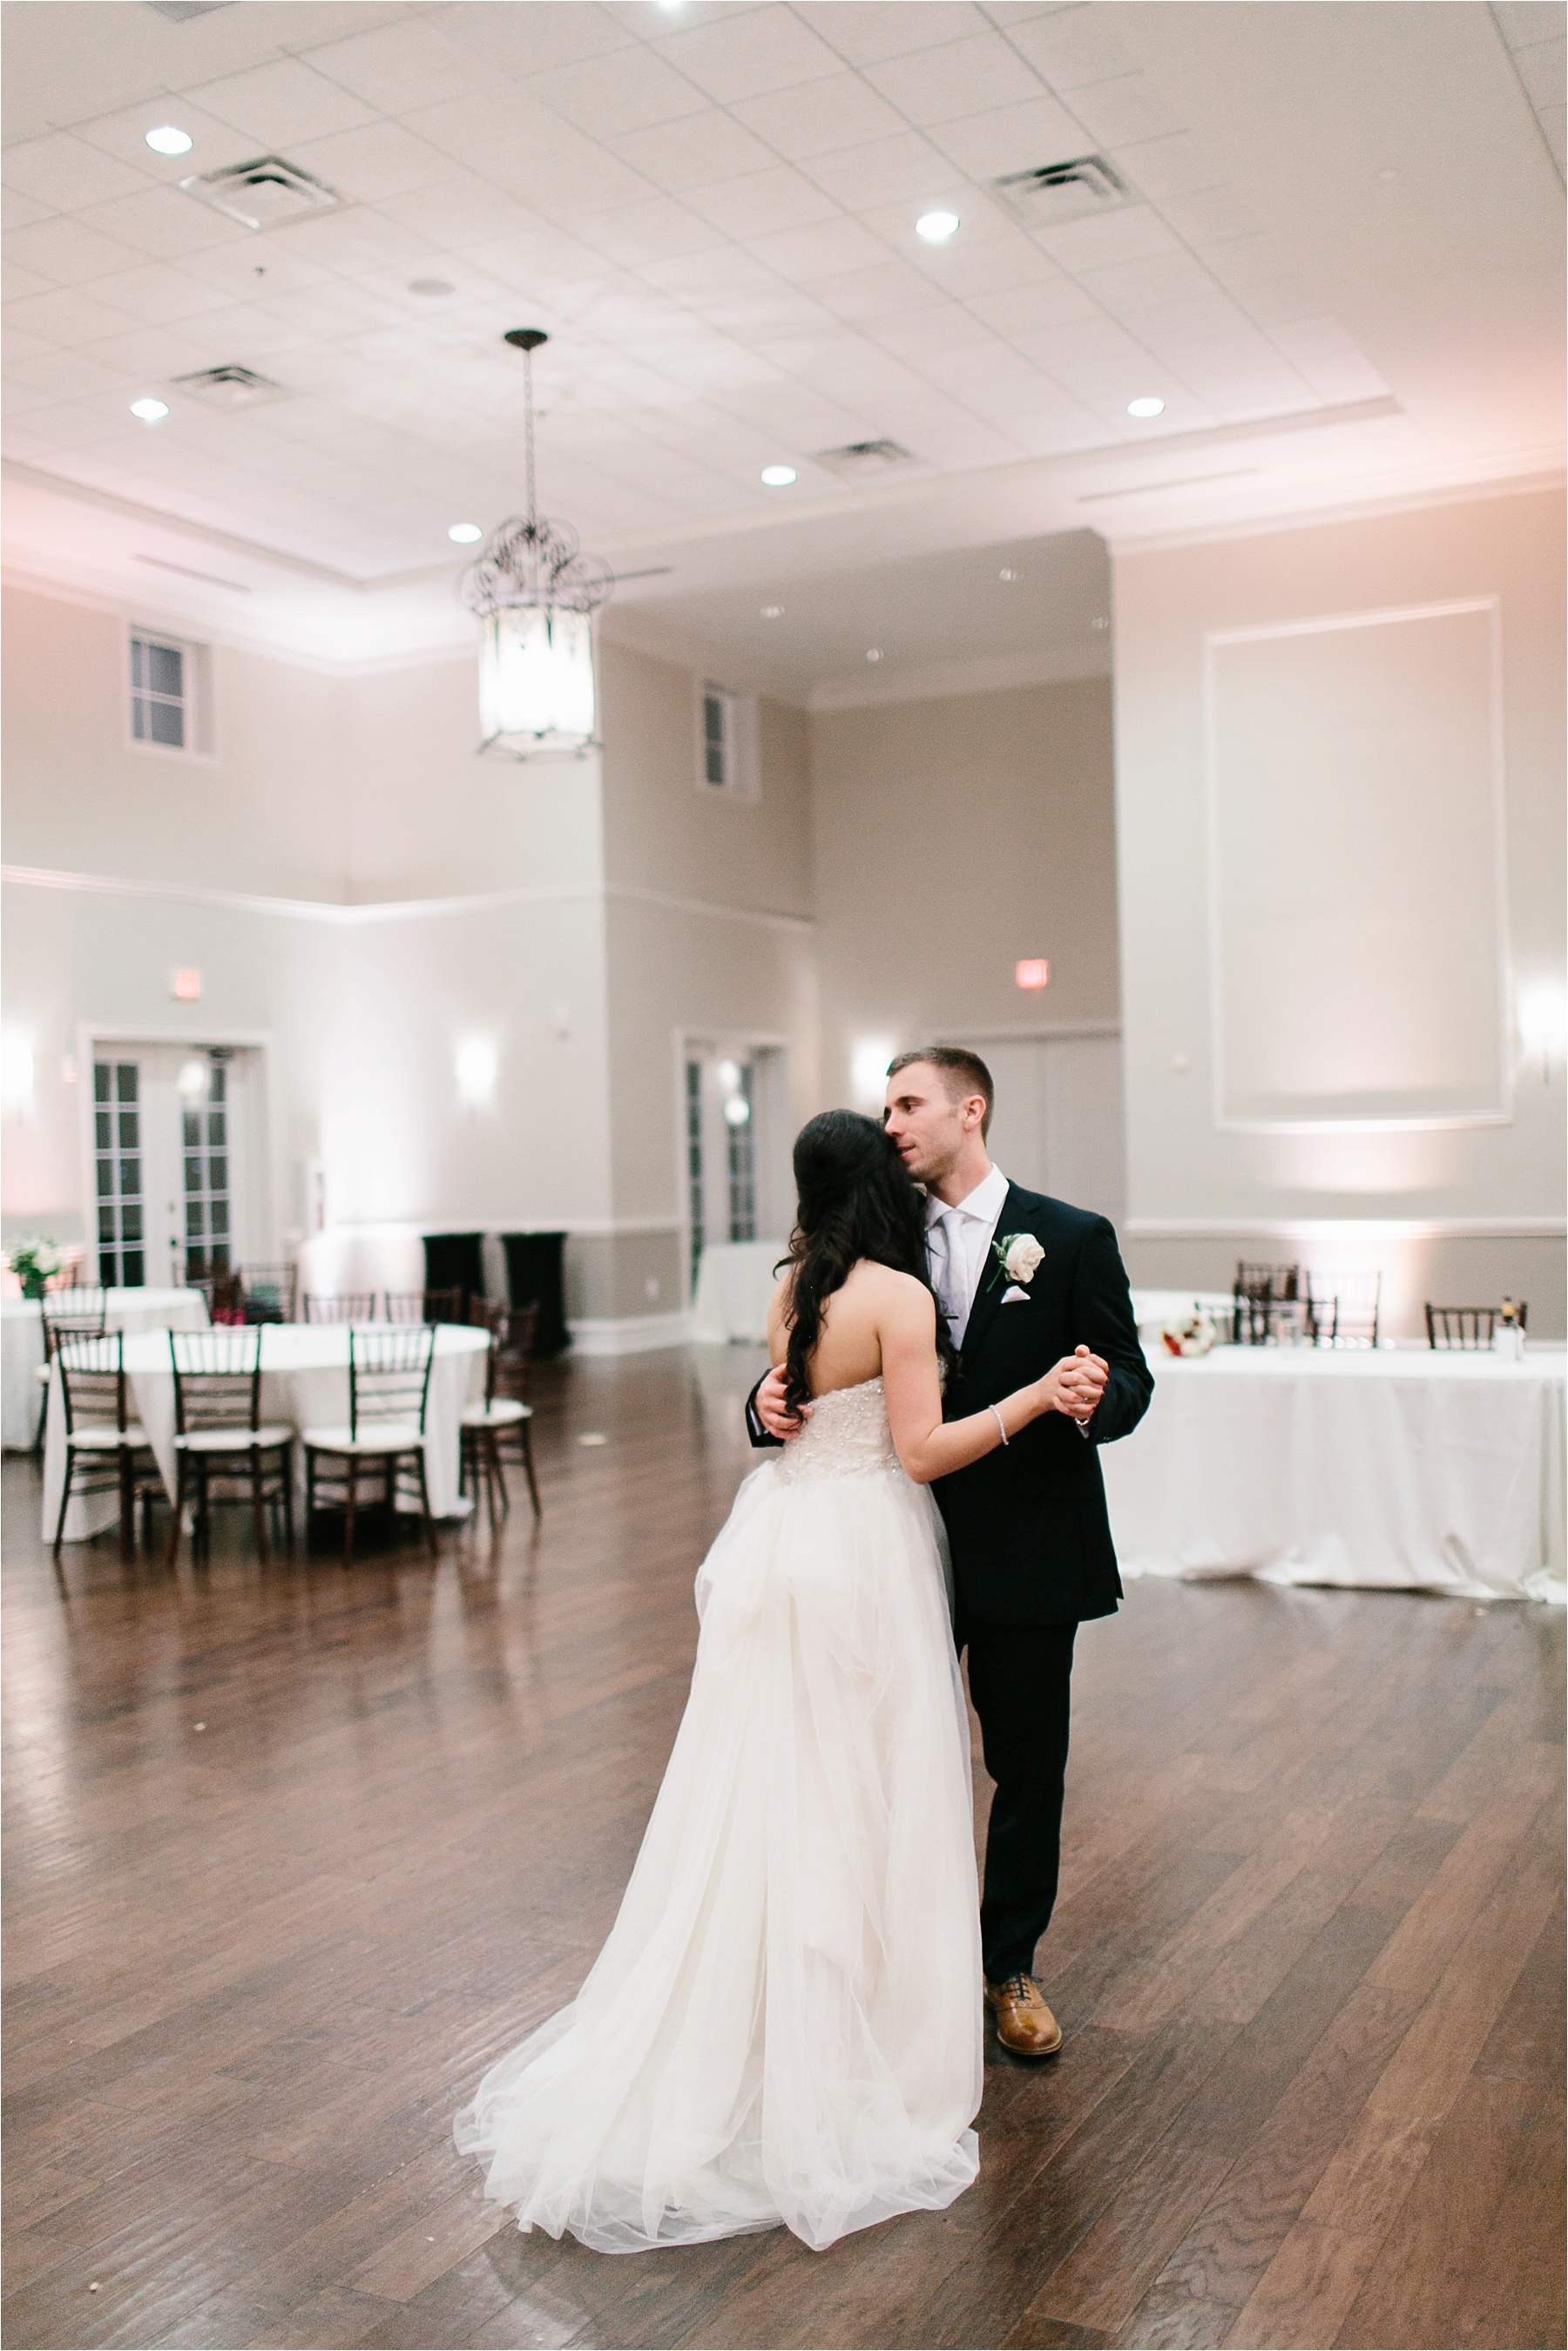 Chrissy + Zach __ The Windsor at Hebron Park Wedding by North Texas Wedding Photographer _ Rachel Meagan Photography __110